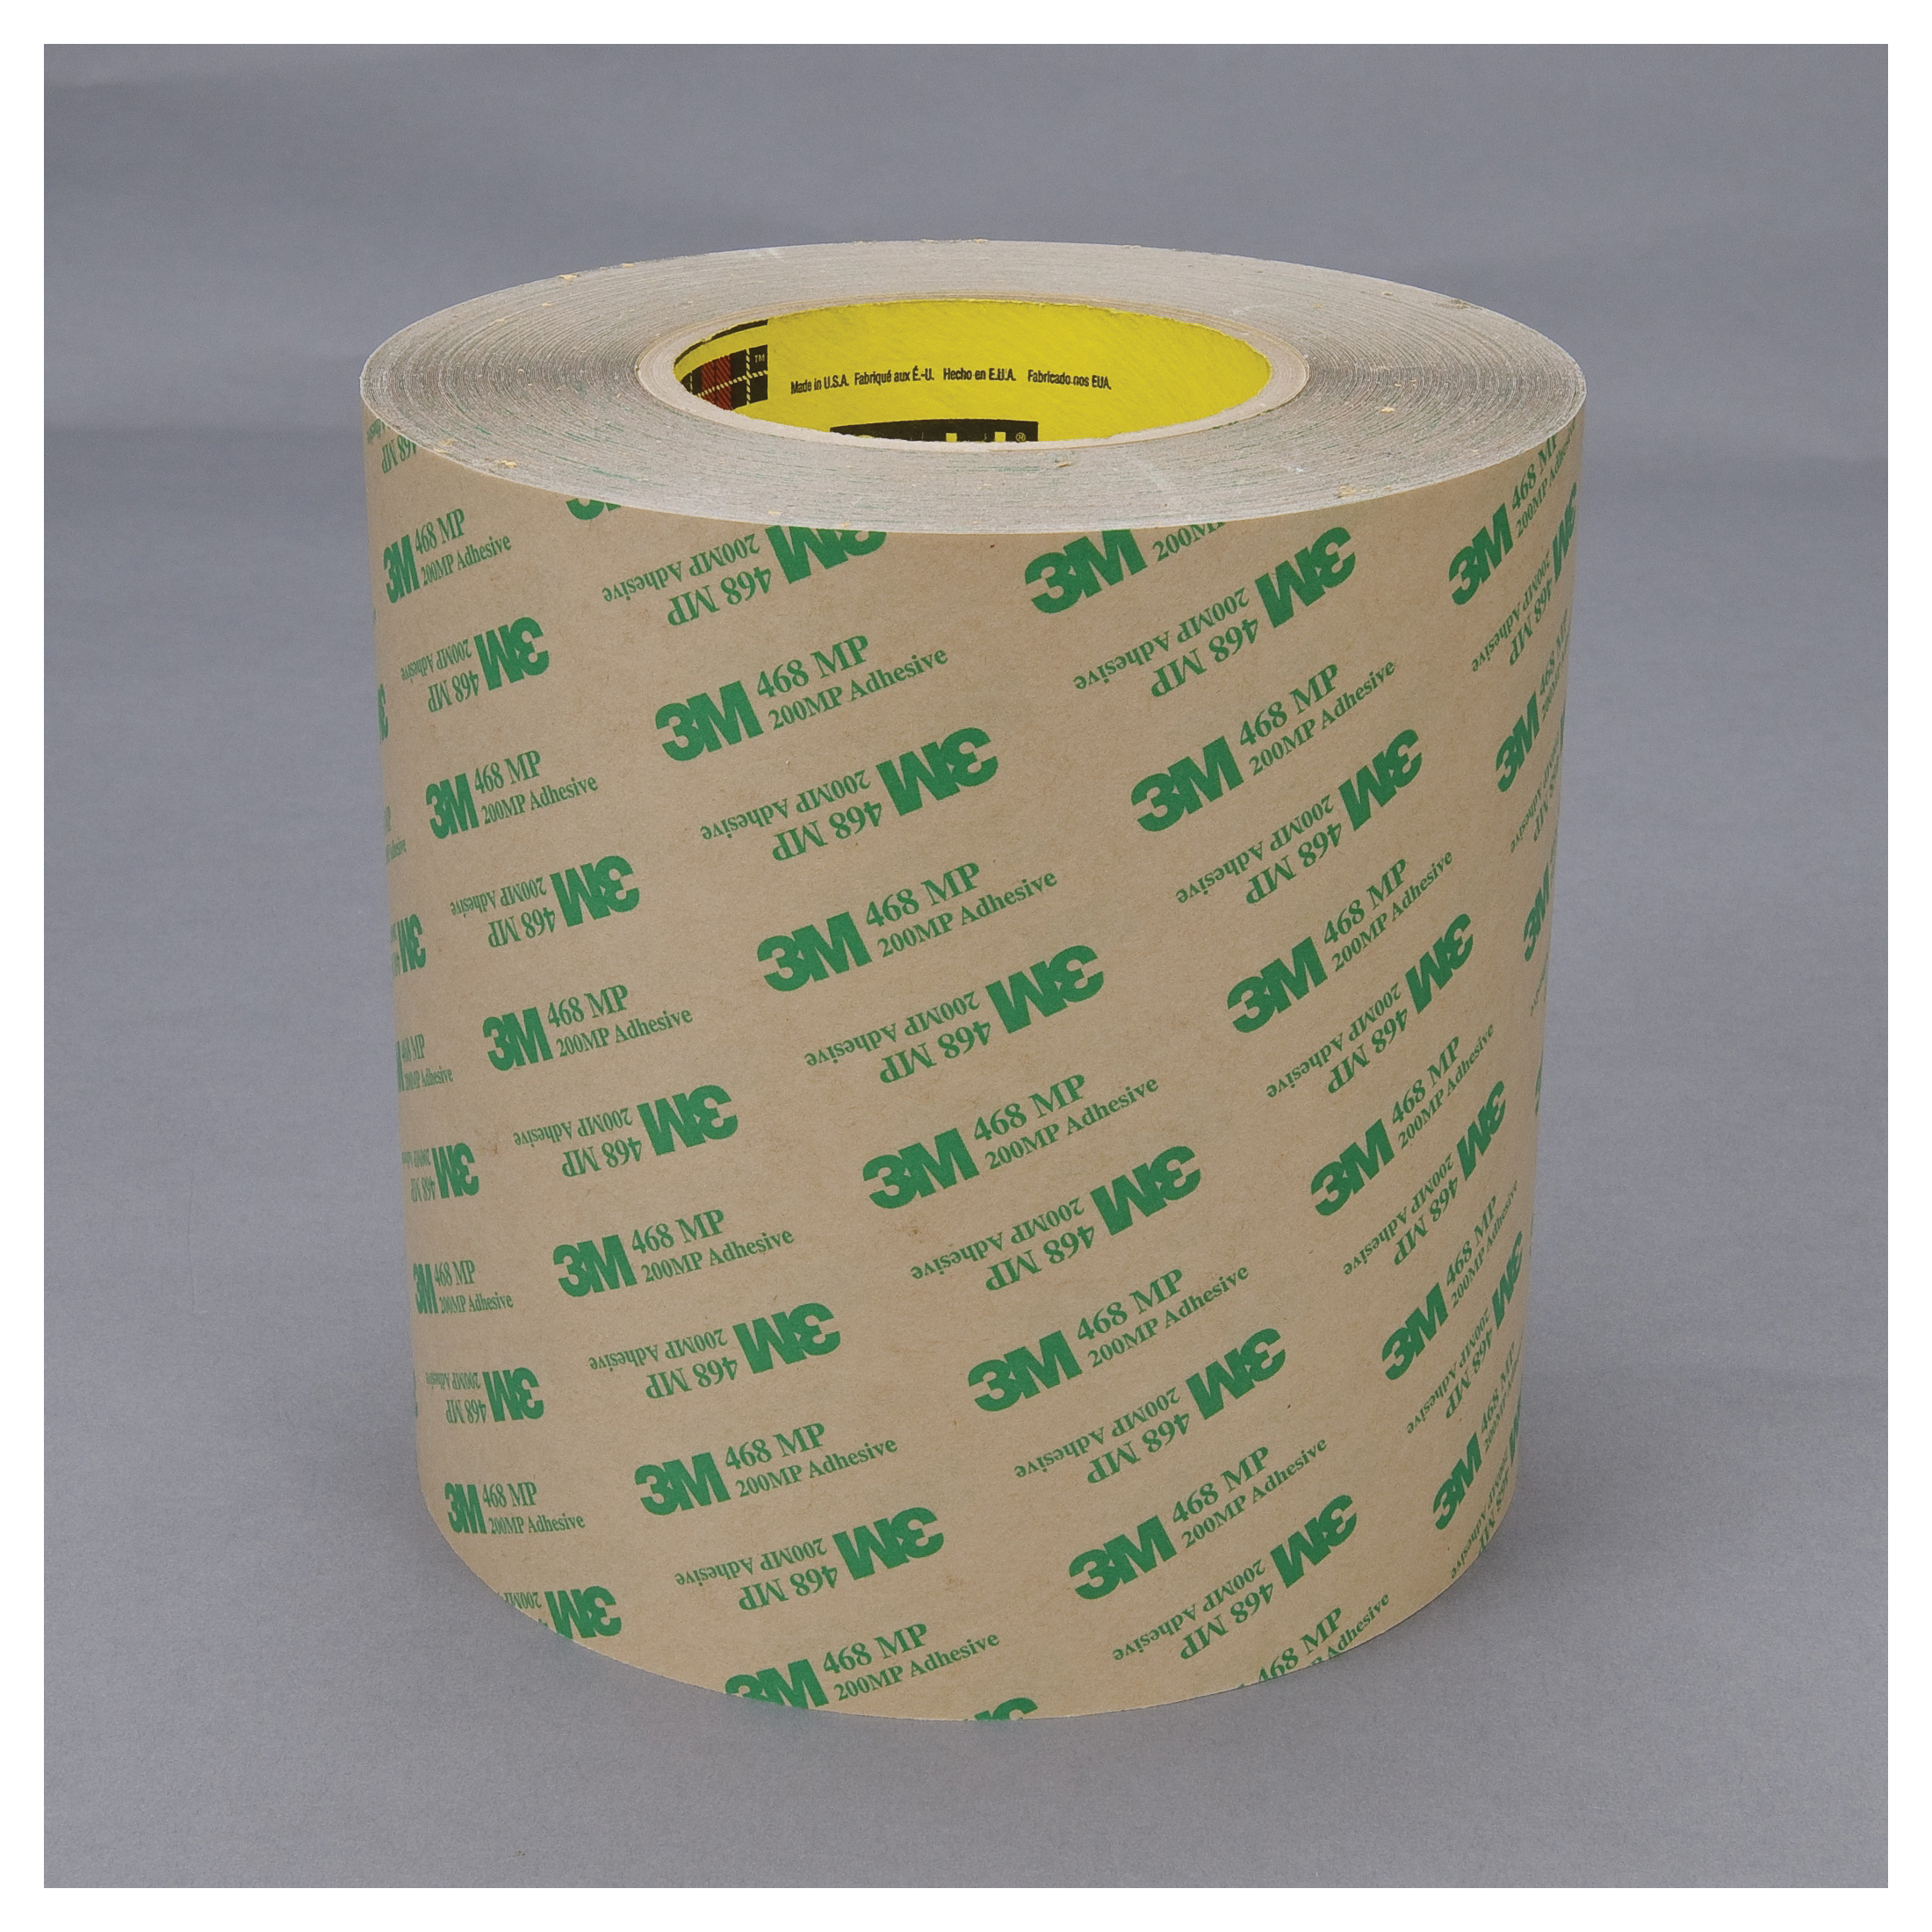 3M™ 021200-18881 High Performance Medium Tack Adhesive Transfer Tape, 60 yd L x 13 in W, 9.2 mil THK, 5 mil 200MP Acrylic Adhesive, Clear